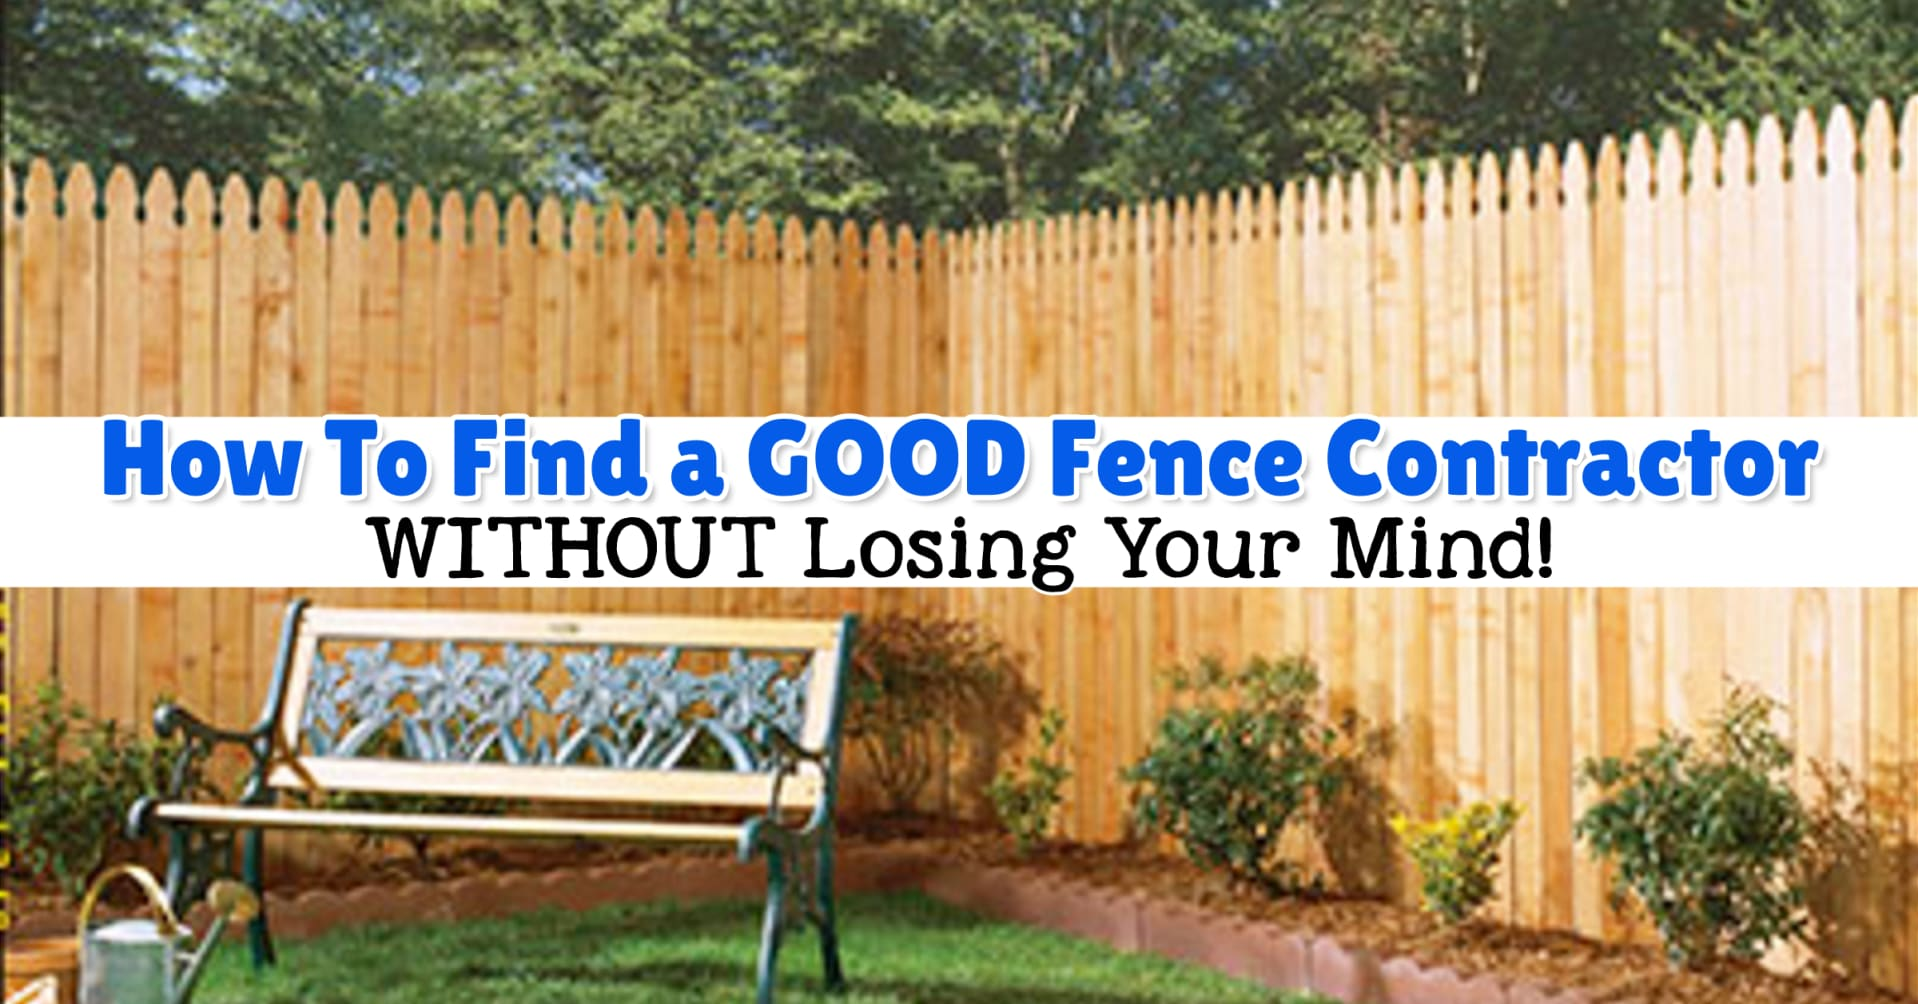 Fence Contractors – How To Hire a Local Fence Installer - How To Find a GOOD Fence Contractor - fence companies near me - questions to ask a fence contractor - fence companies in the area - commerical contractors near me - garden fencing contractors near me - vinyl fence installation companies - home fence contractors - yard fencing contractors - house fence installation - fence builders around me - fence installation contractors